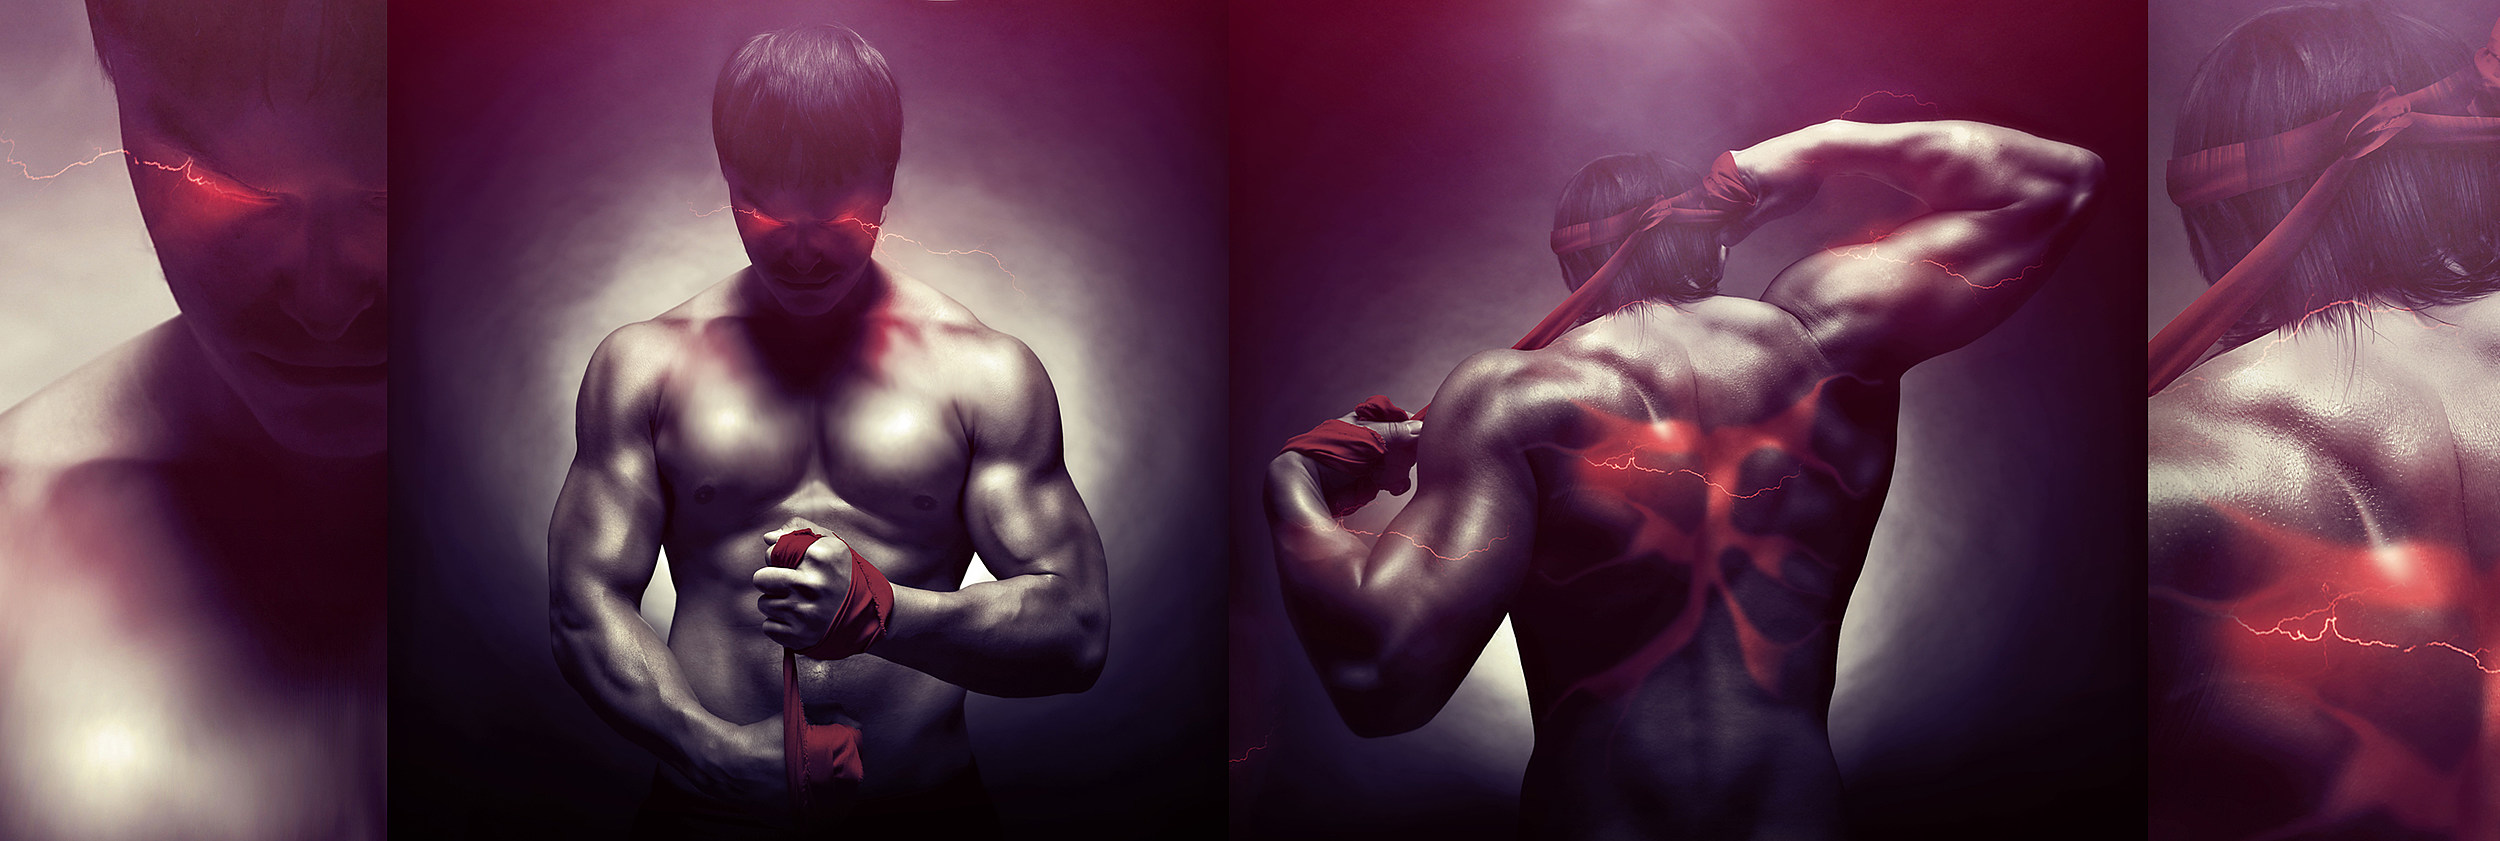 Hyper Real Super Street Fighter IV Art Featuring Evil Ryu